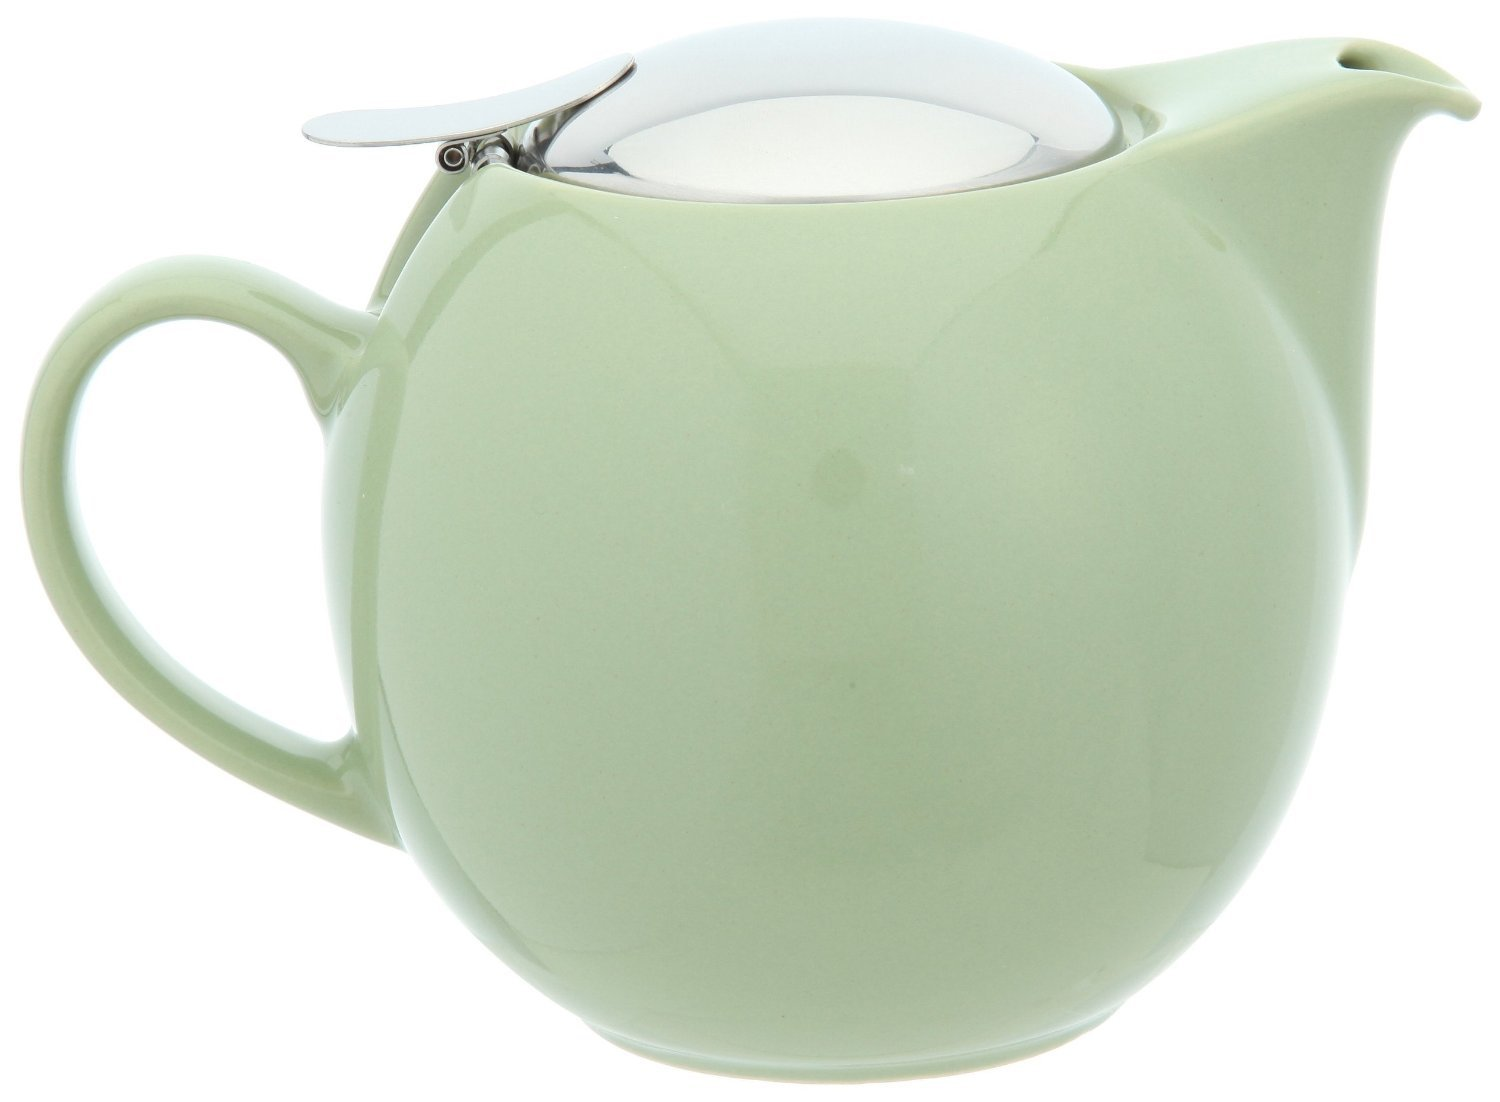 Bee House 26oz Round Ceramic Teapot (Banana)